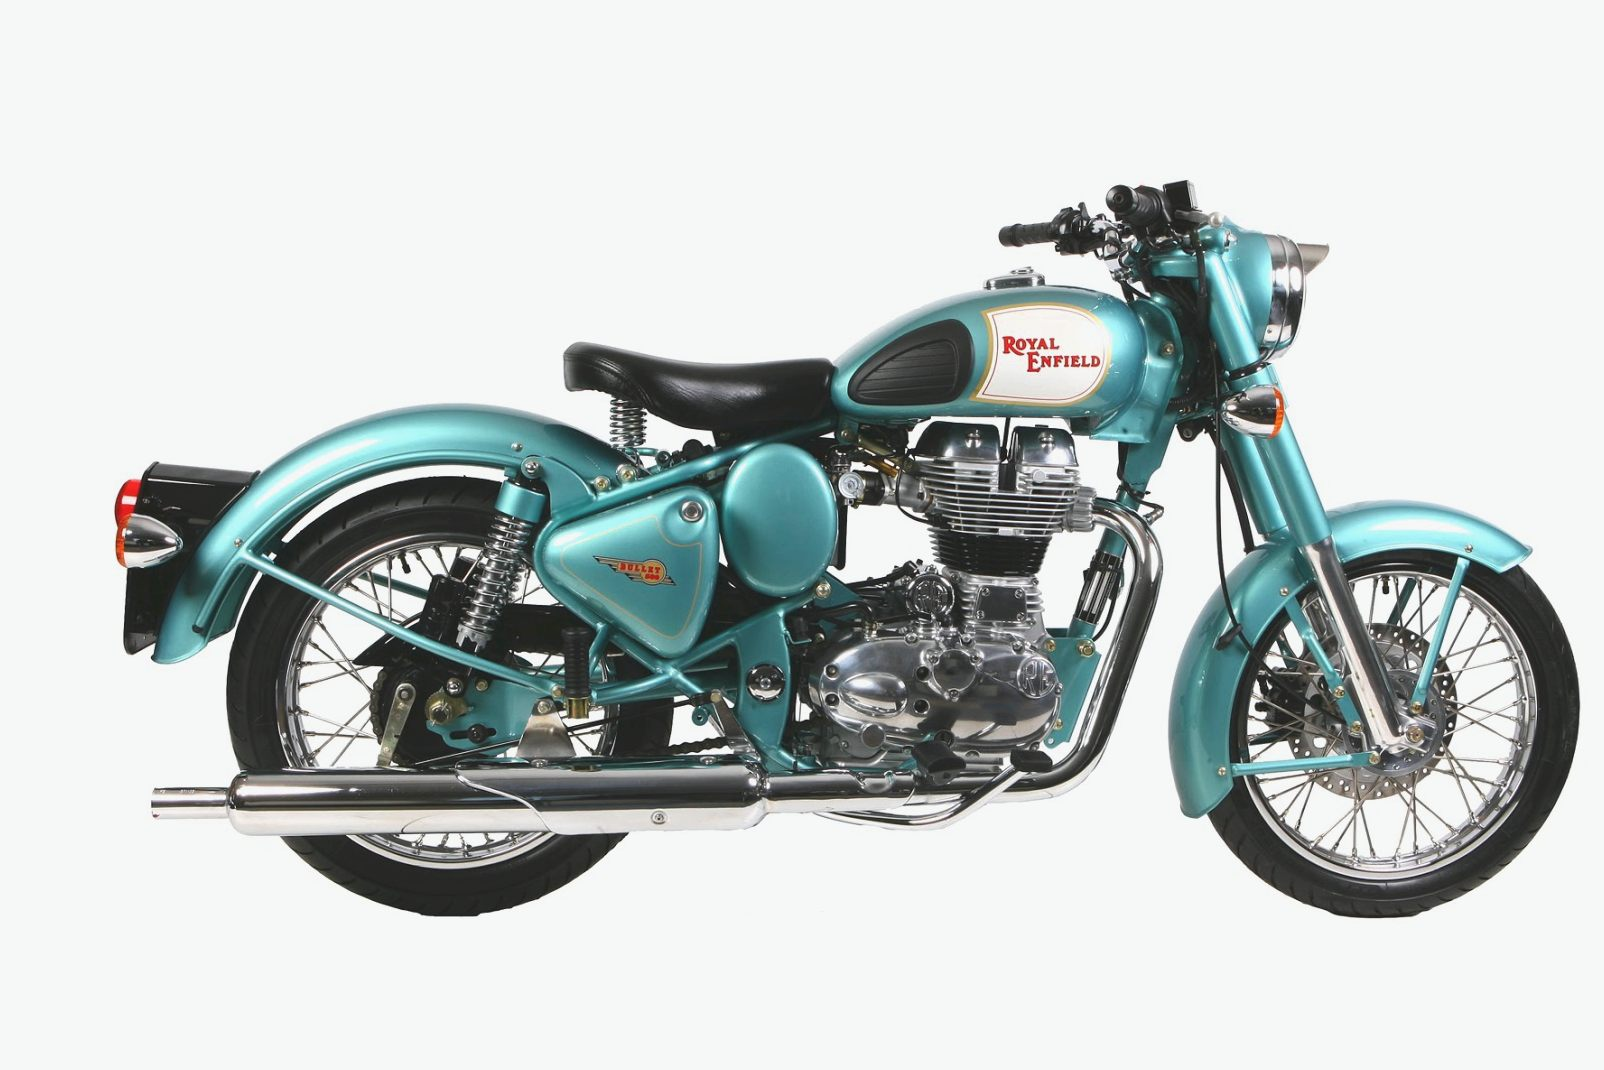 Royal Enfield Bullet 500 Classic 2011 images #123991